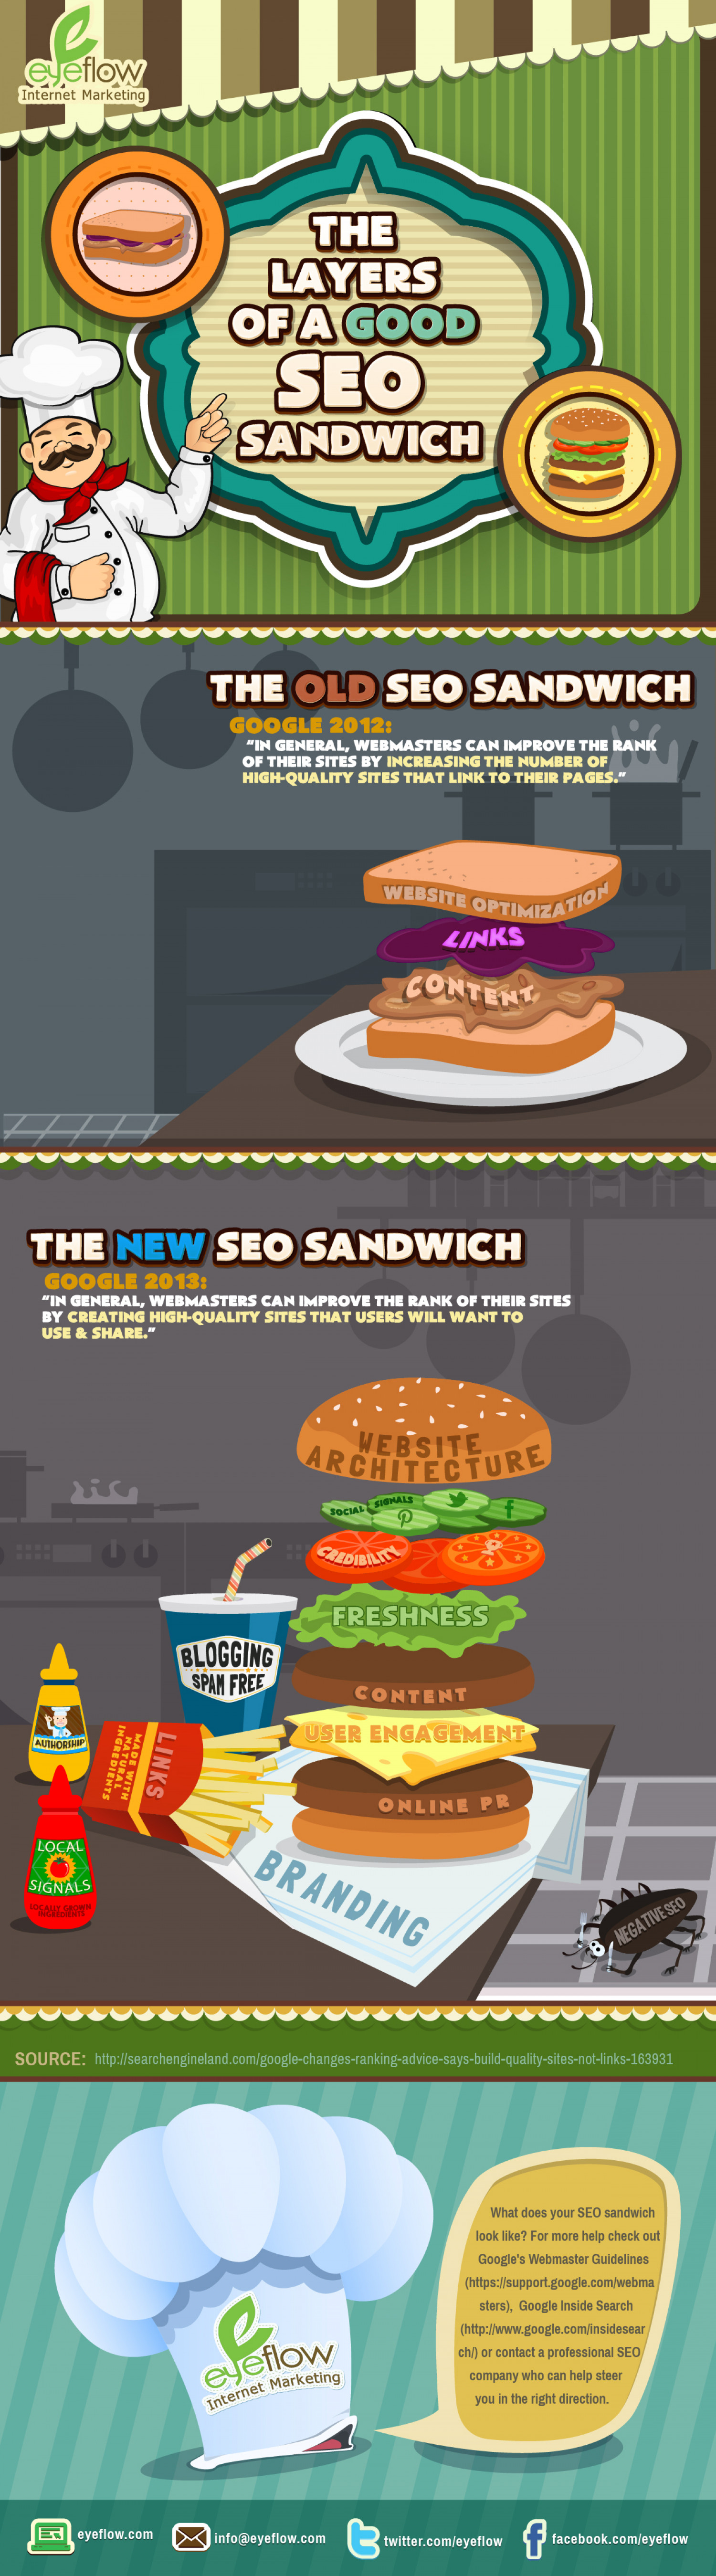 Recipe for SEO Success to Satisfy Your Appetite  Infographic